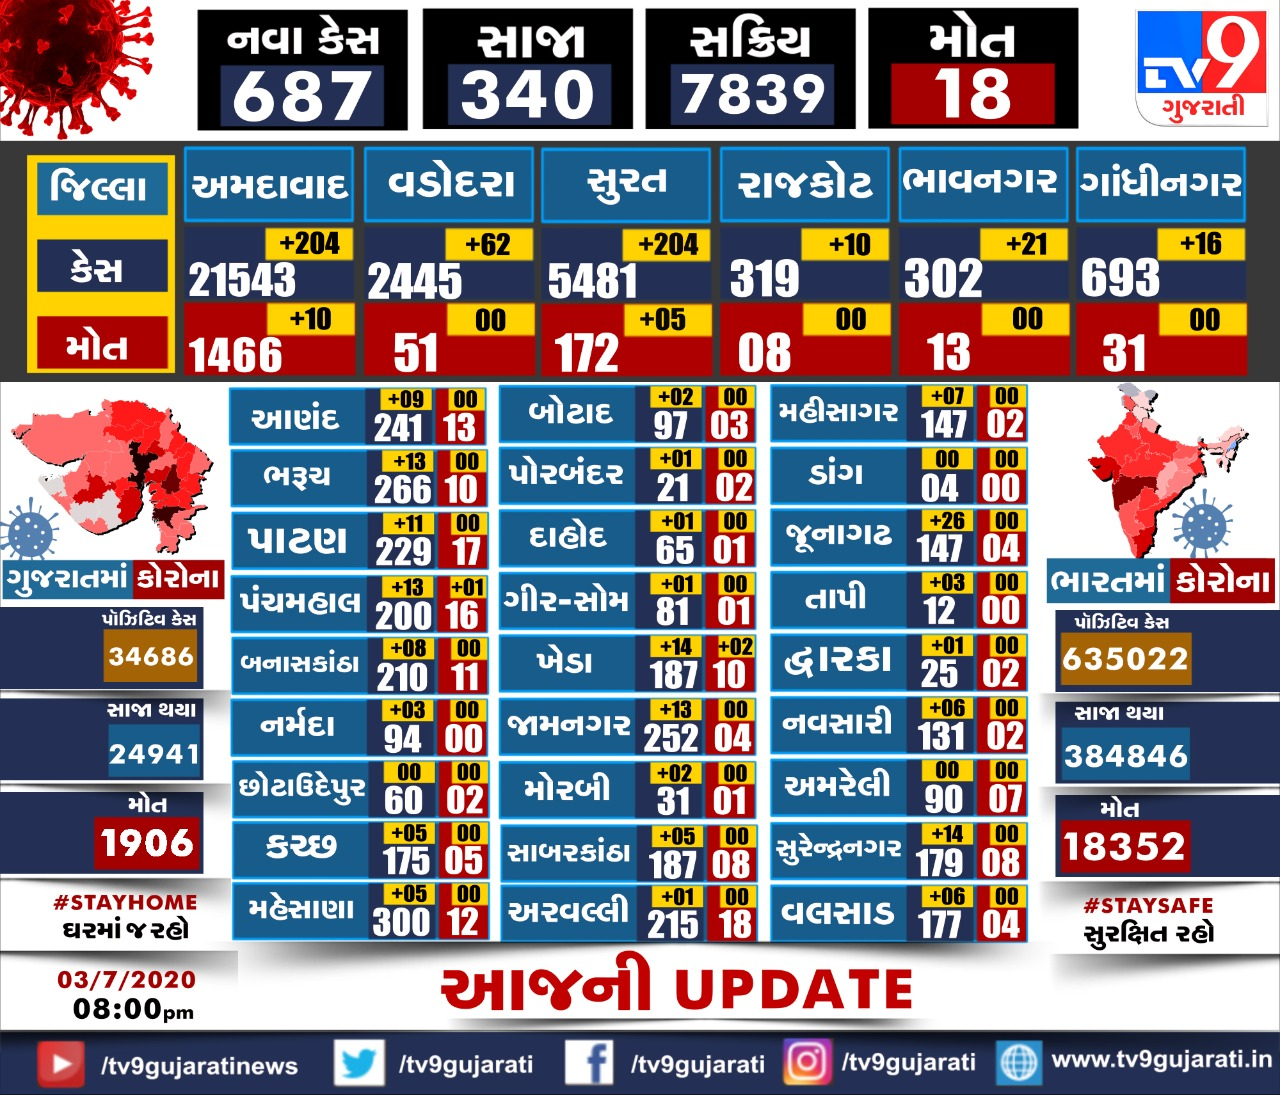 more 687 new corona virus cases reported in gujarat state last 24 hour chhela 24 kalak ma corona na vadhu 687 nava positive case nondhaya